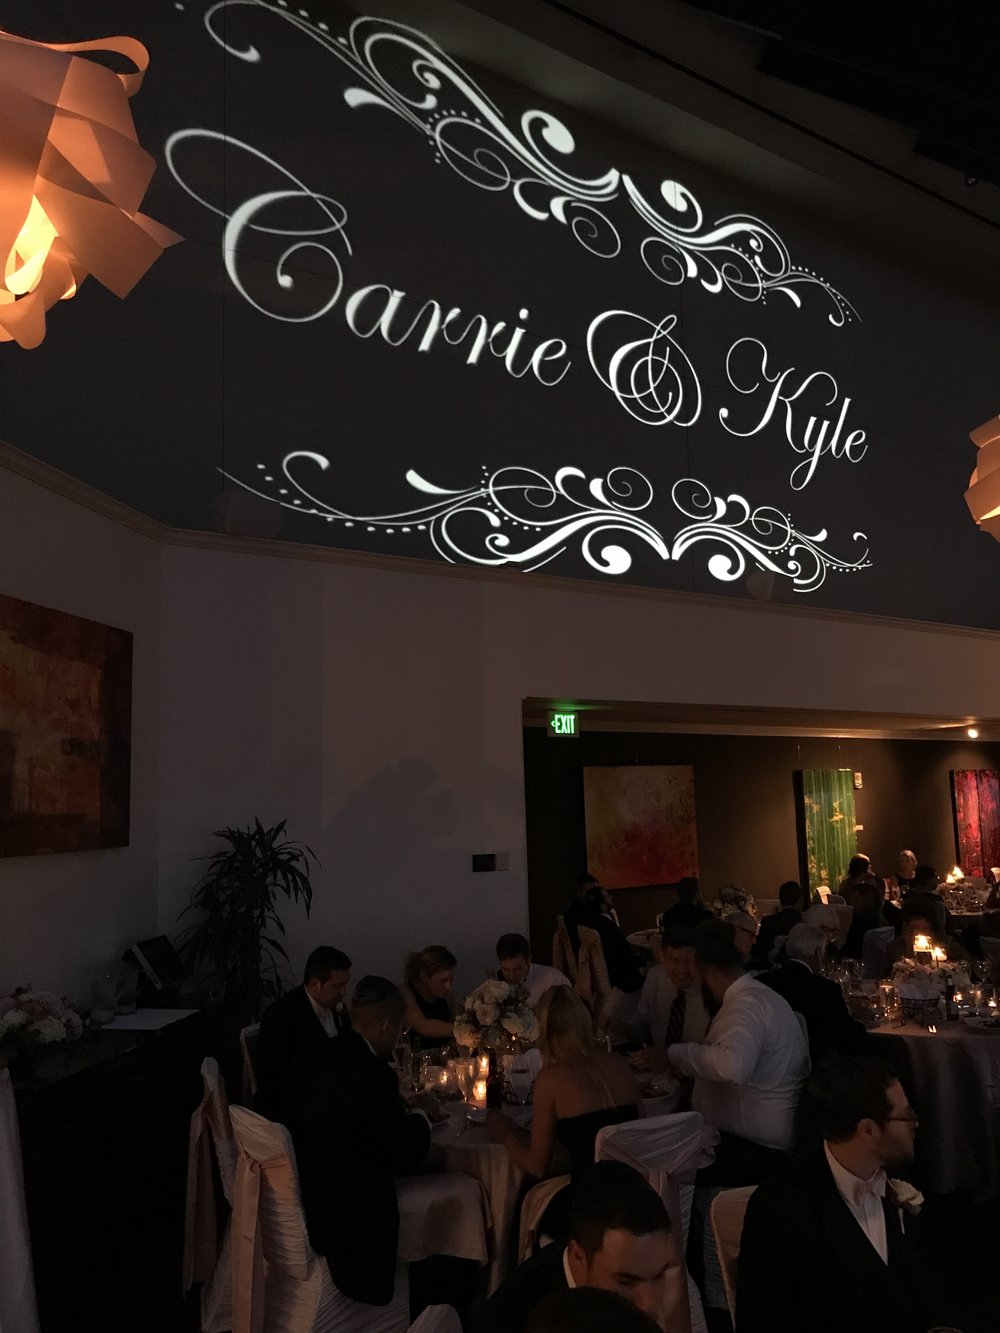 The Skyline Club's huge canvas for Carrie & Kyle's custom monogram by Jim Cerone